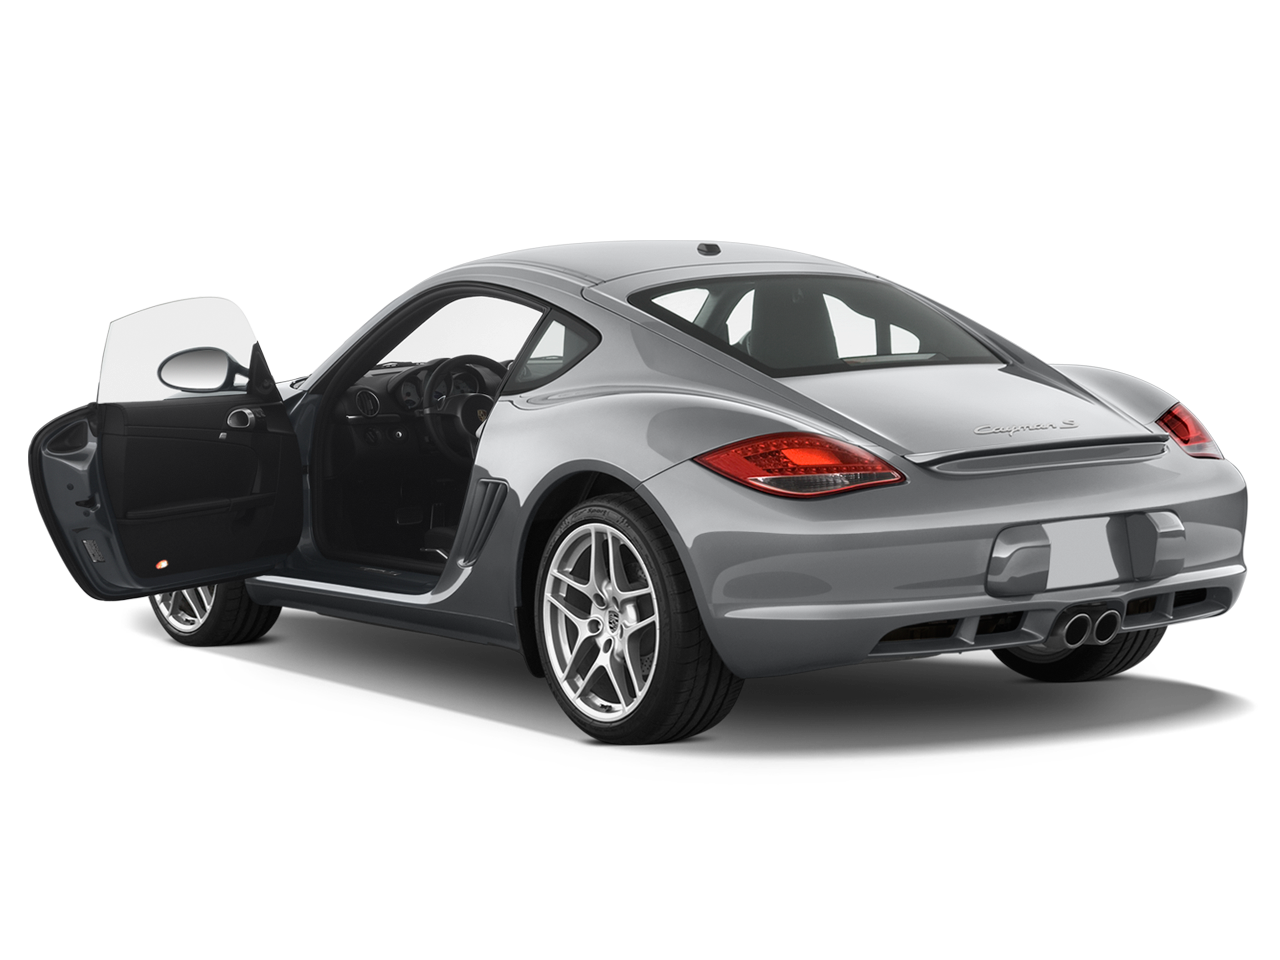 Open car door clipart picture free stock porsche cayman silver car door open coupe sportscar fre... picture free stock